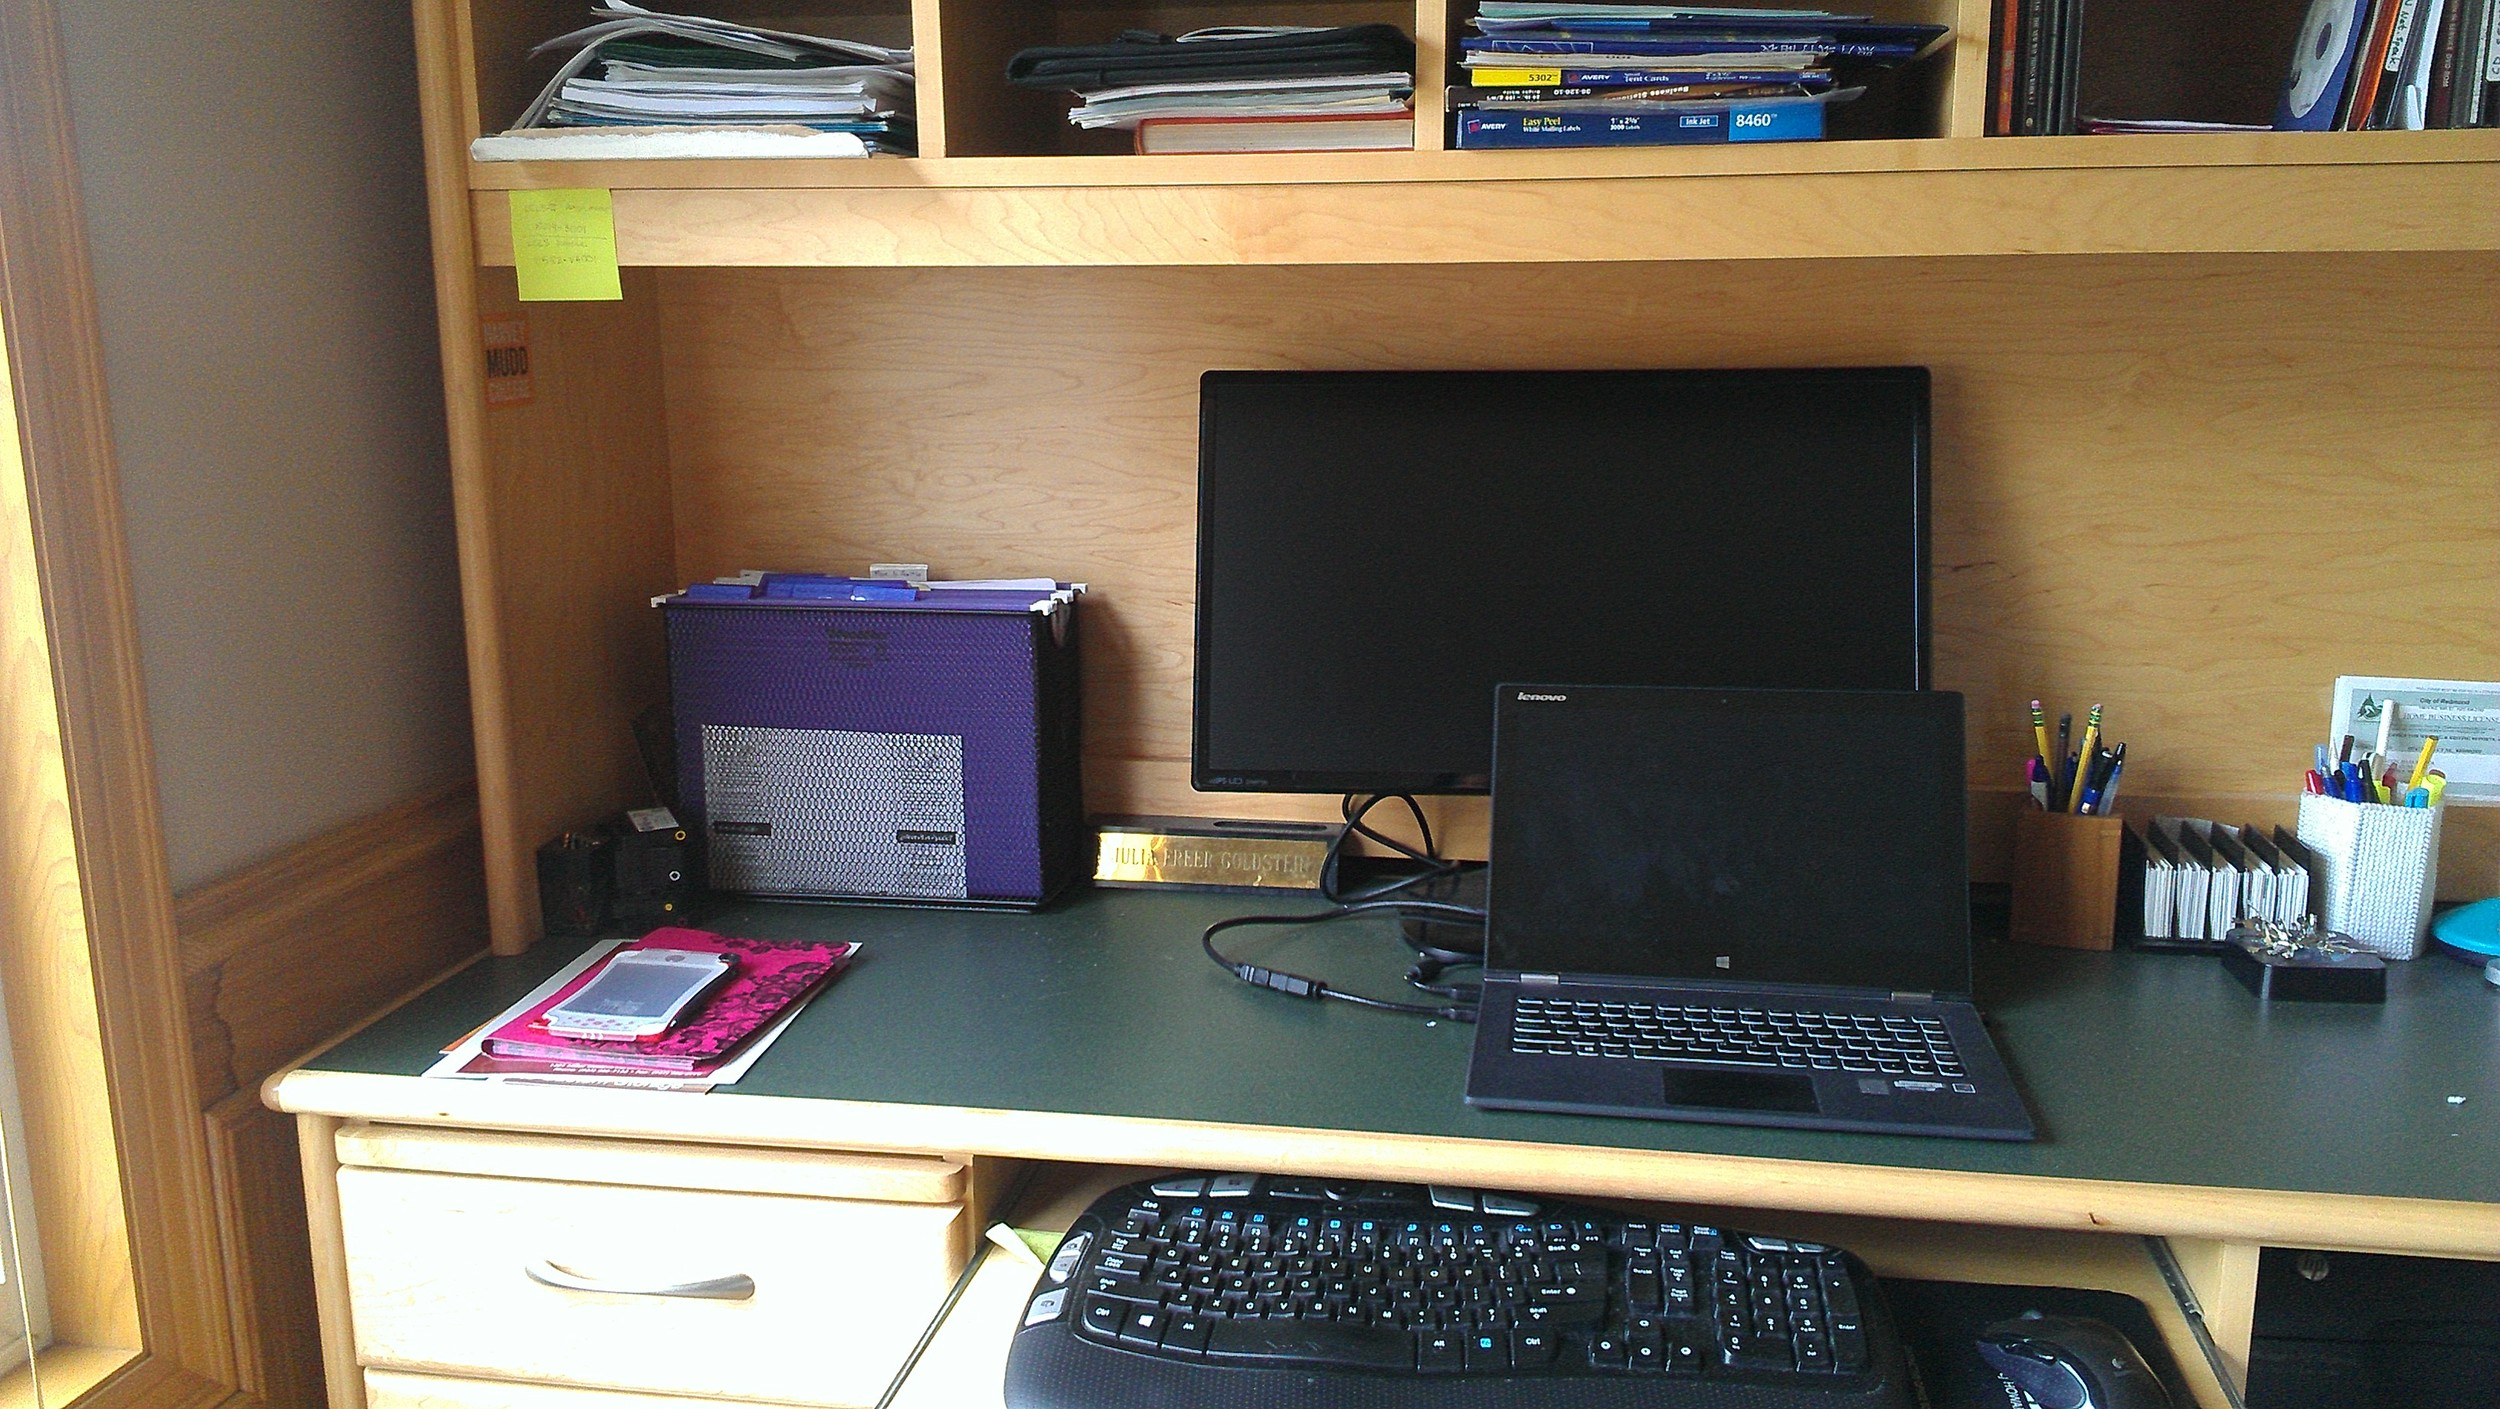 My lovely home office, which is apparently hazardous to my health.